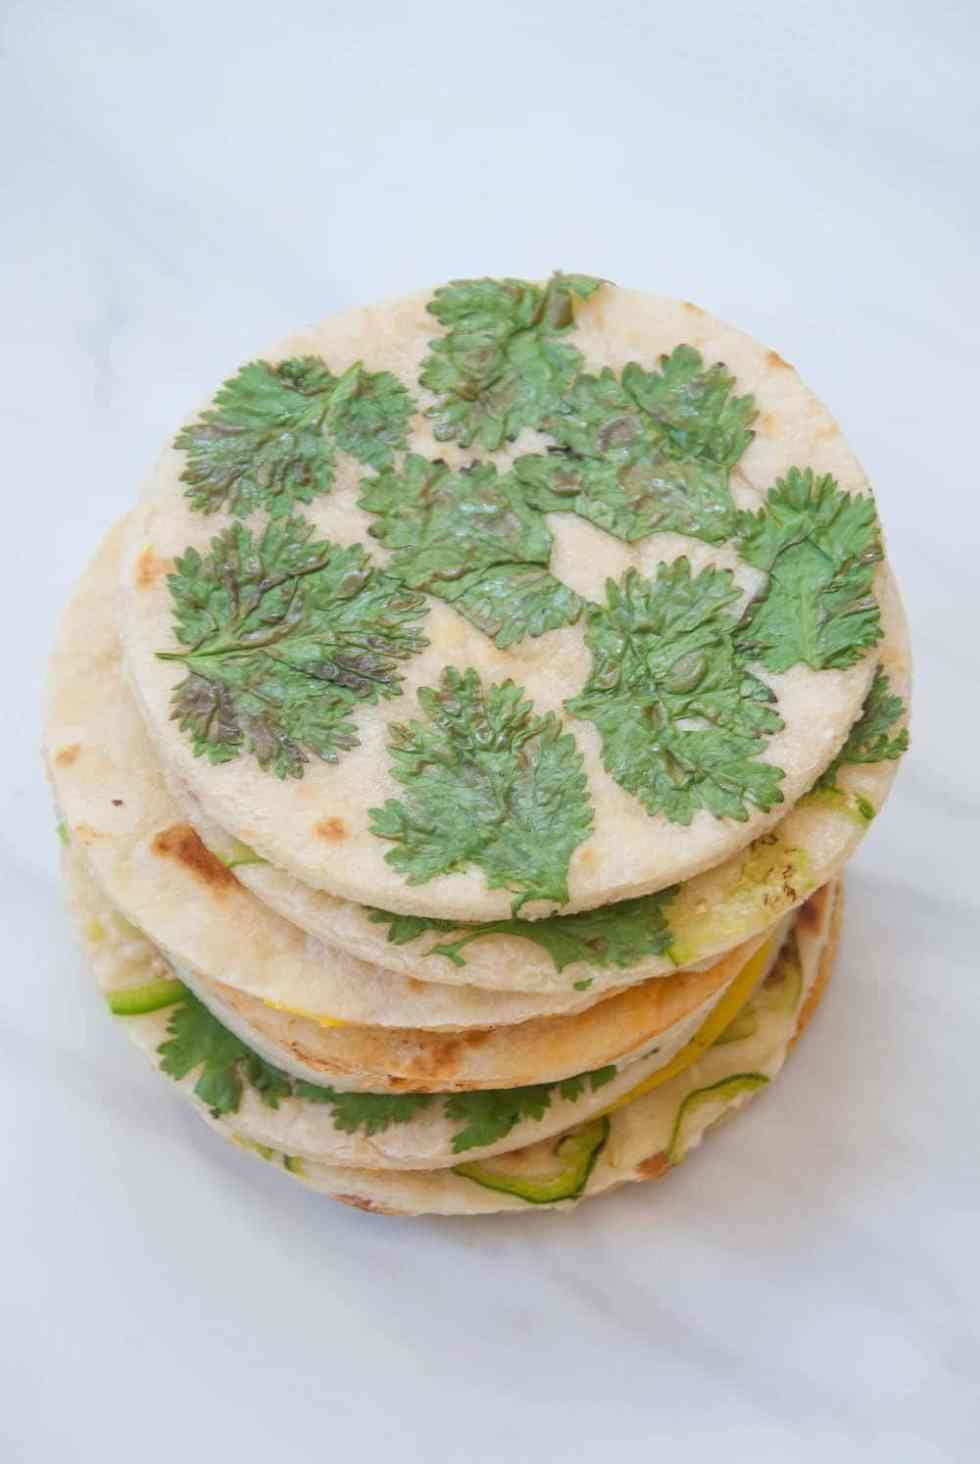 Flavor Pressed & Patterned Homemade Tortillas